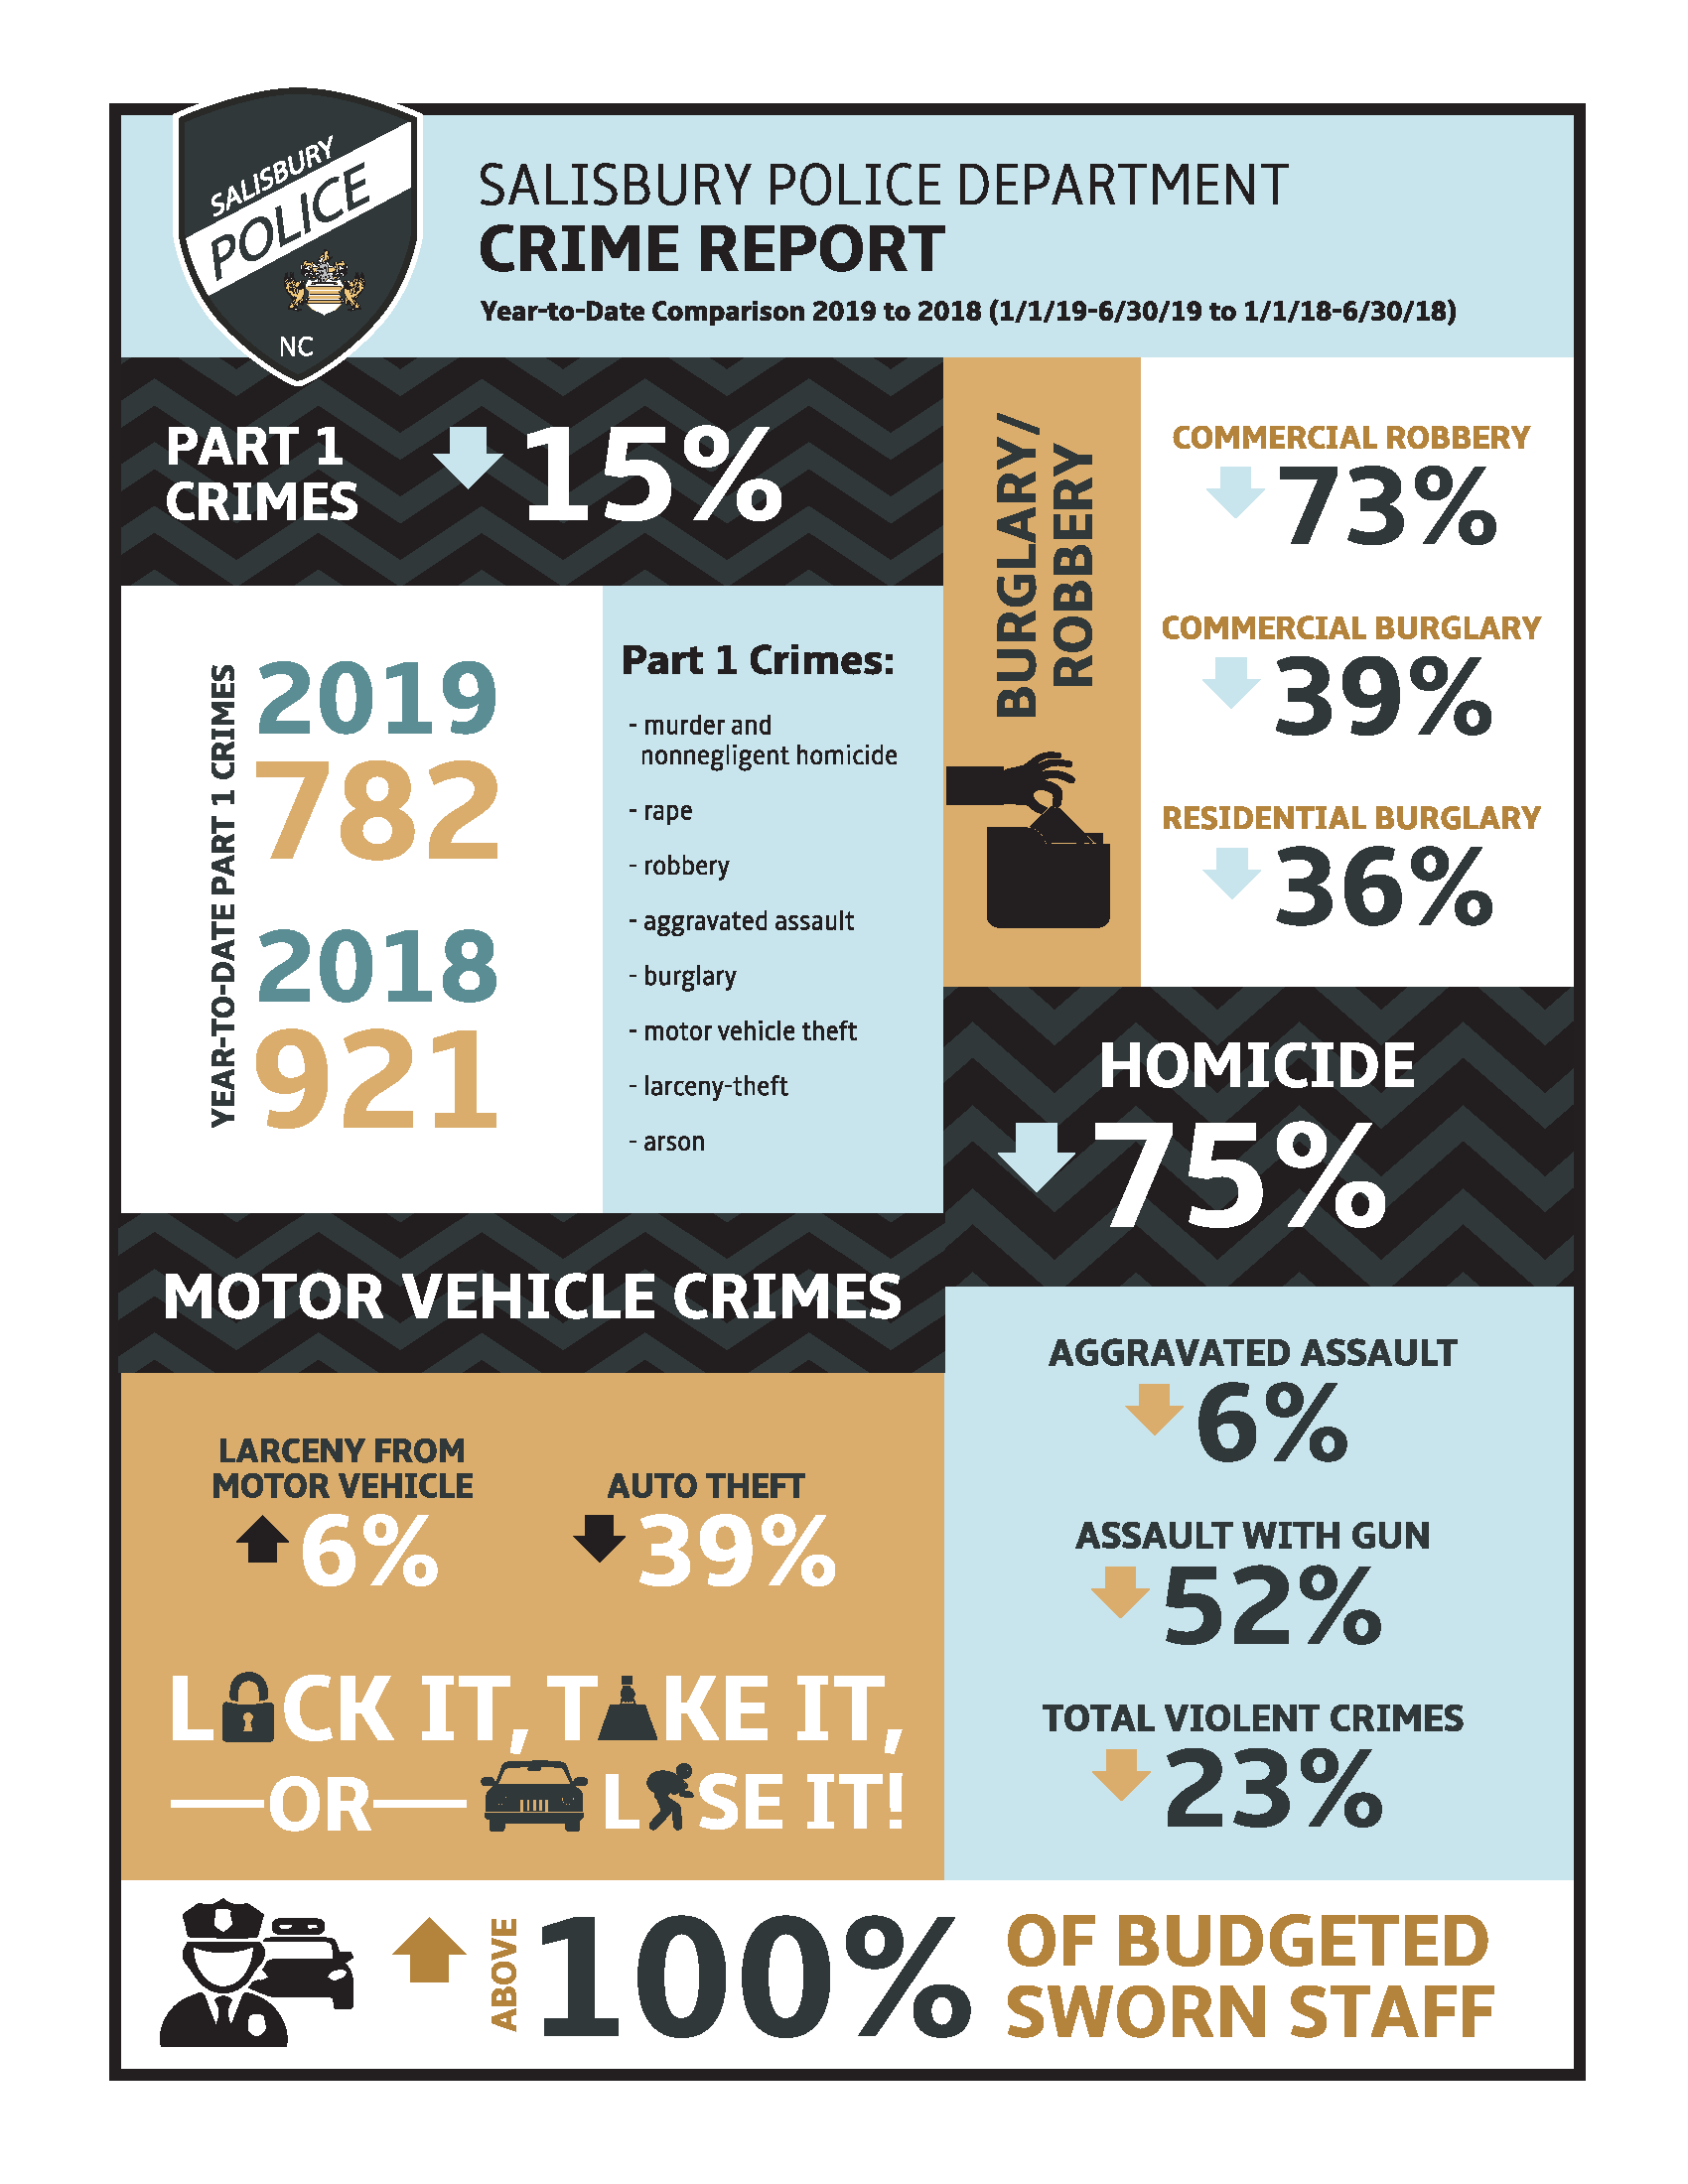 inforgraphic of crime report for salisbury police department, year-to-date